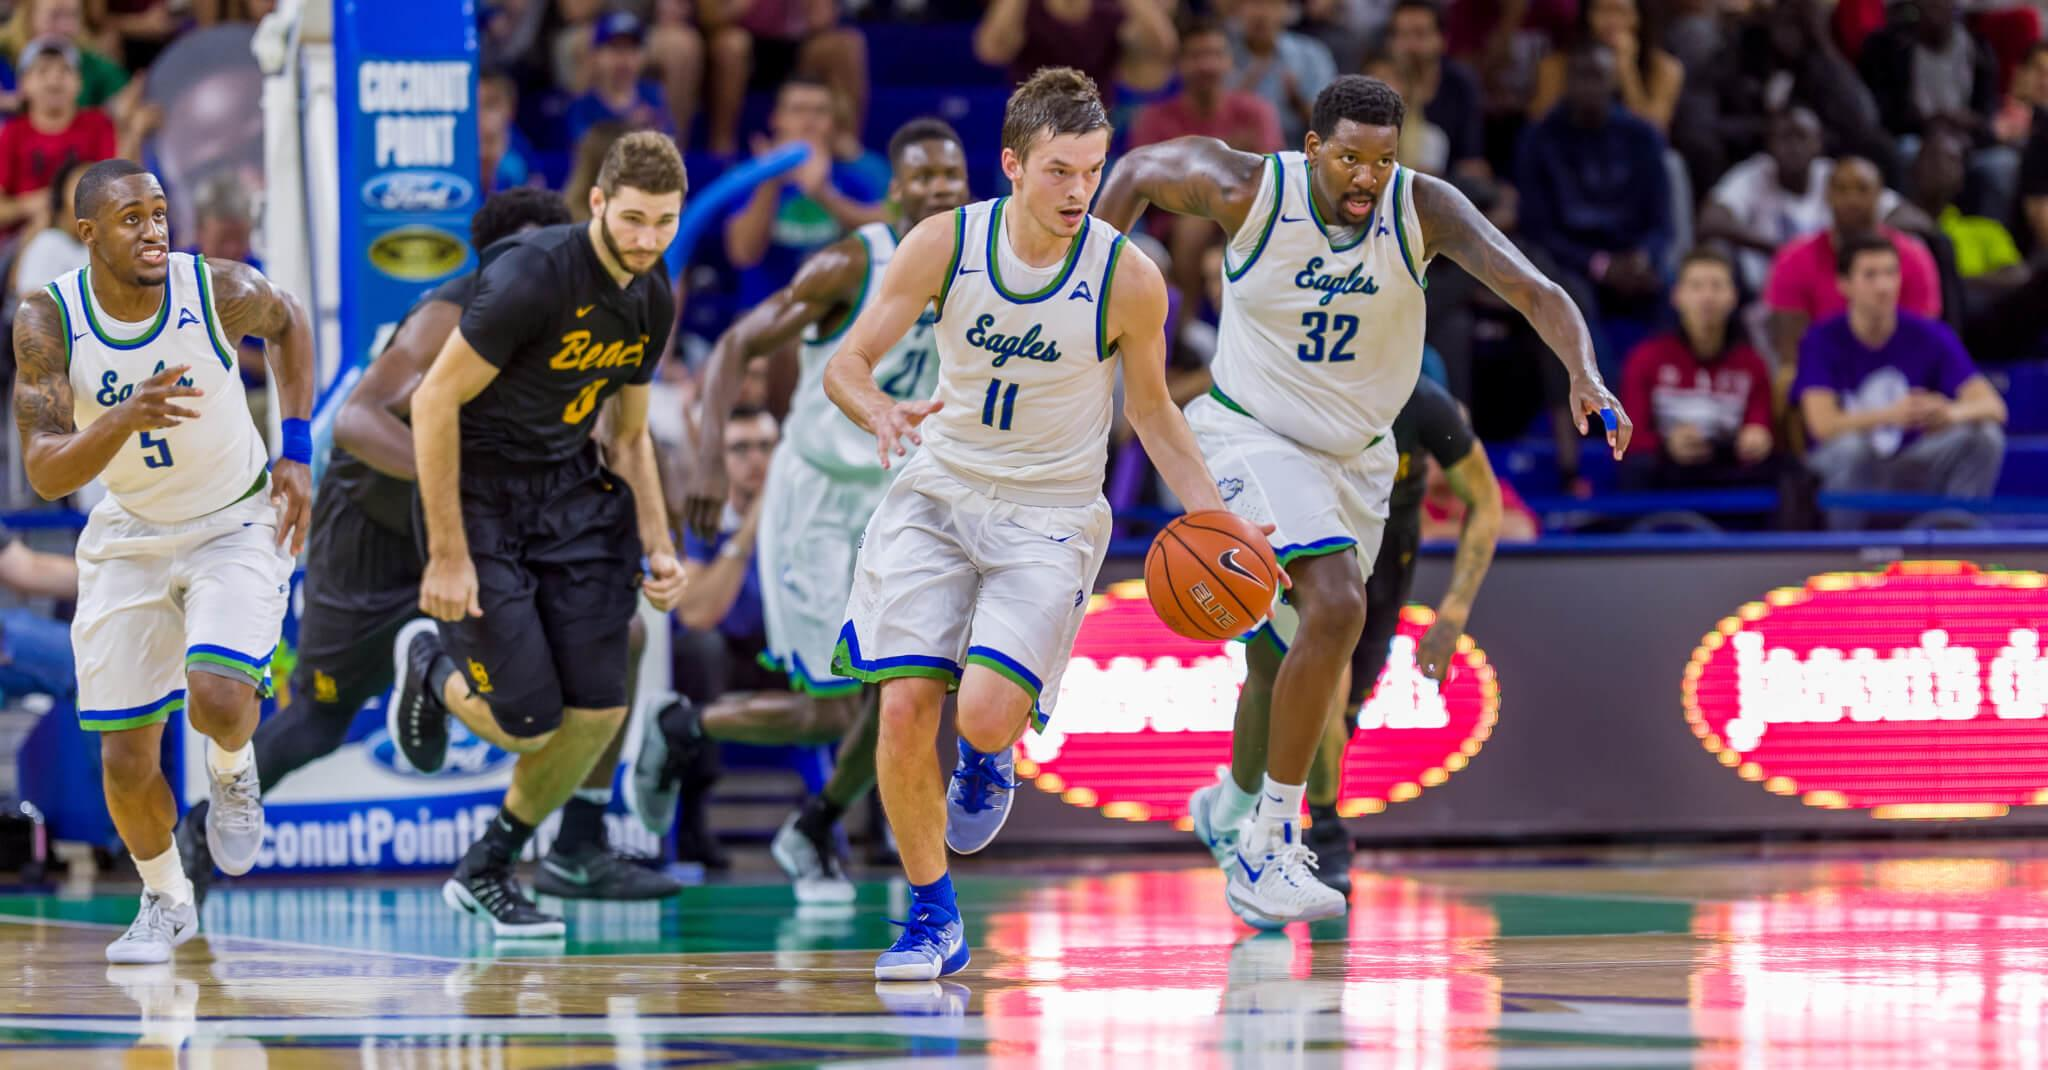 FGCU men's basketball outlast Long Beach State in overtime thriller